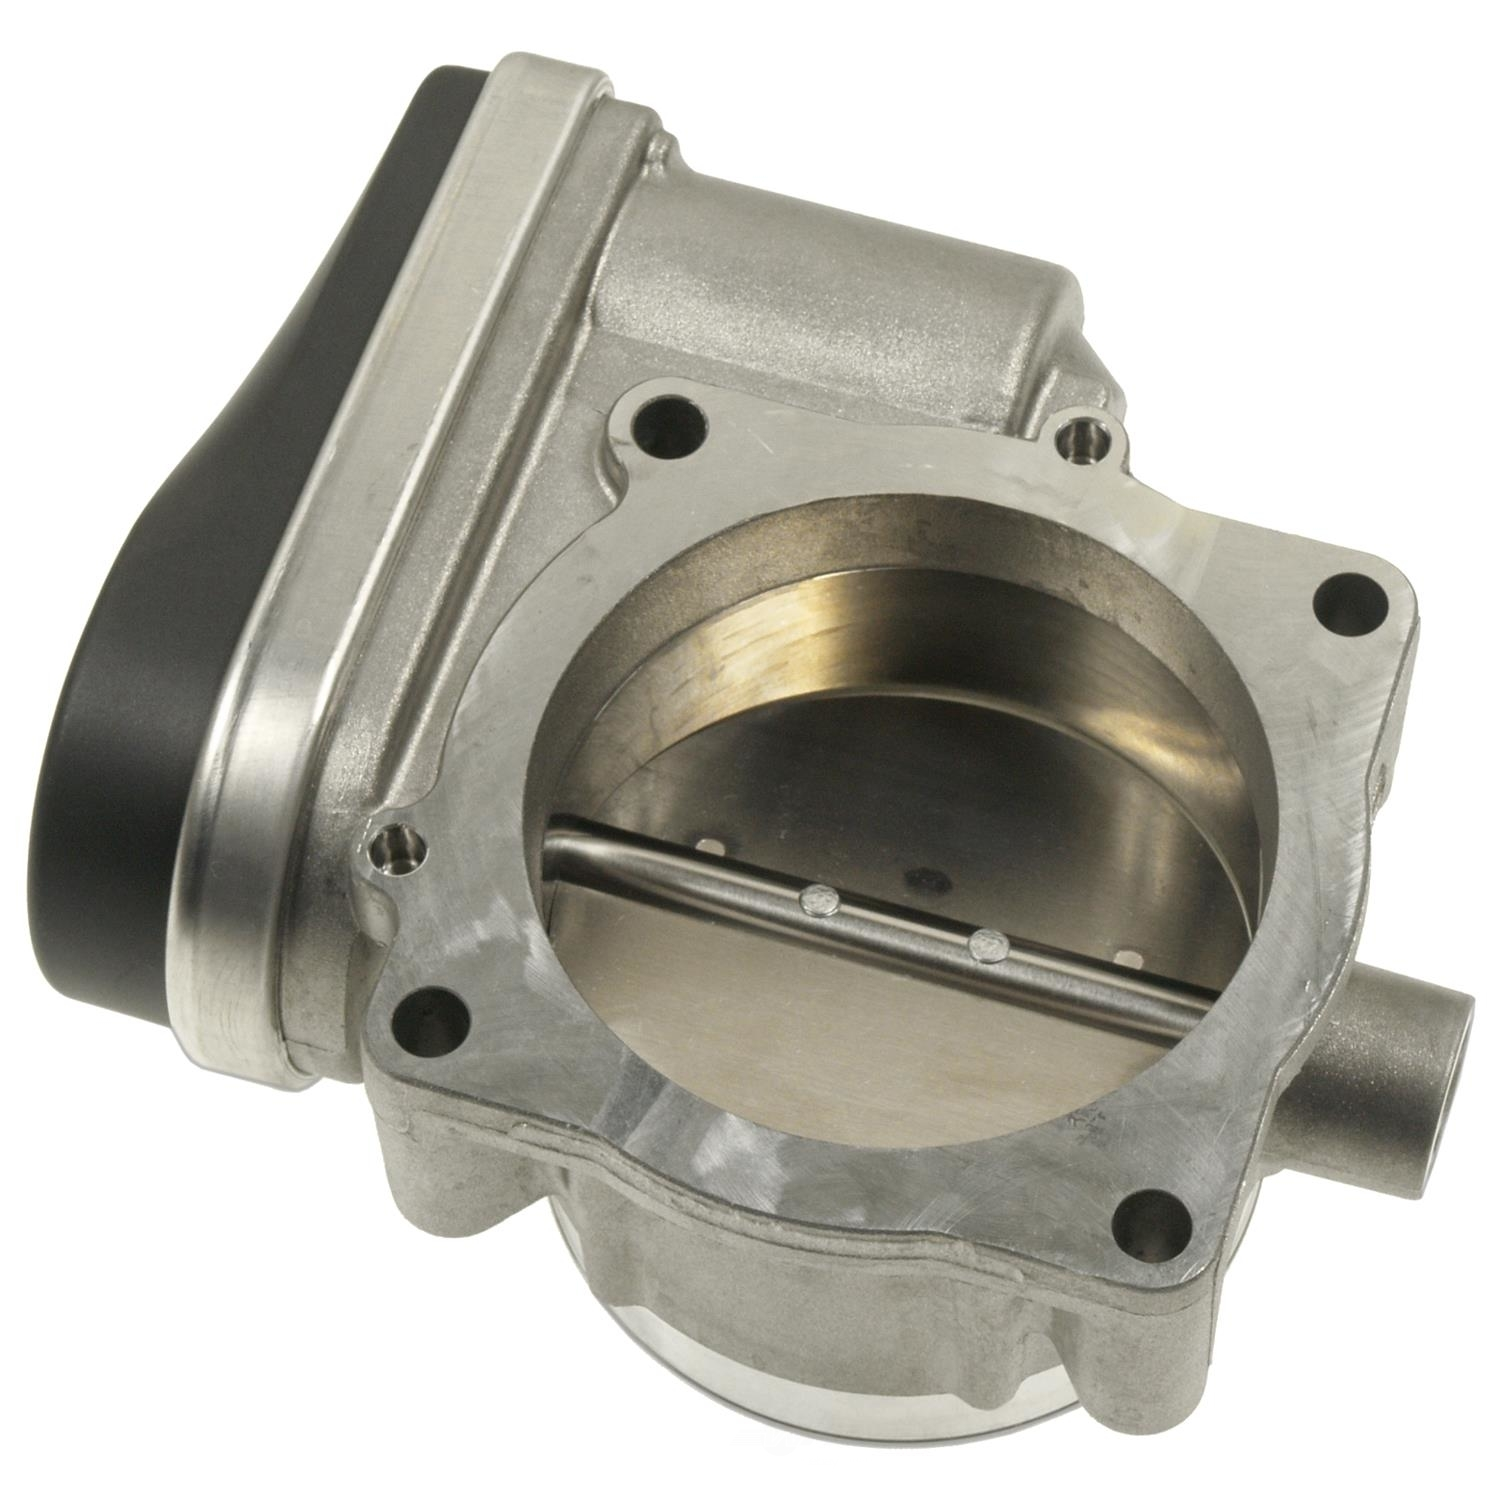 TECHSMART - Fuel Injection Throttle Body Assembly - TCS S20042